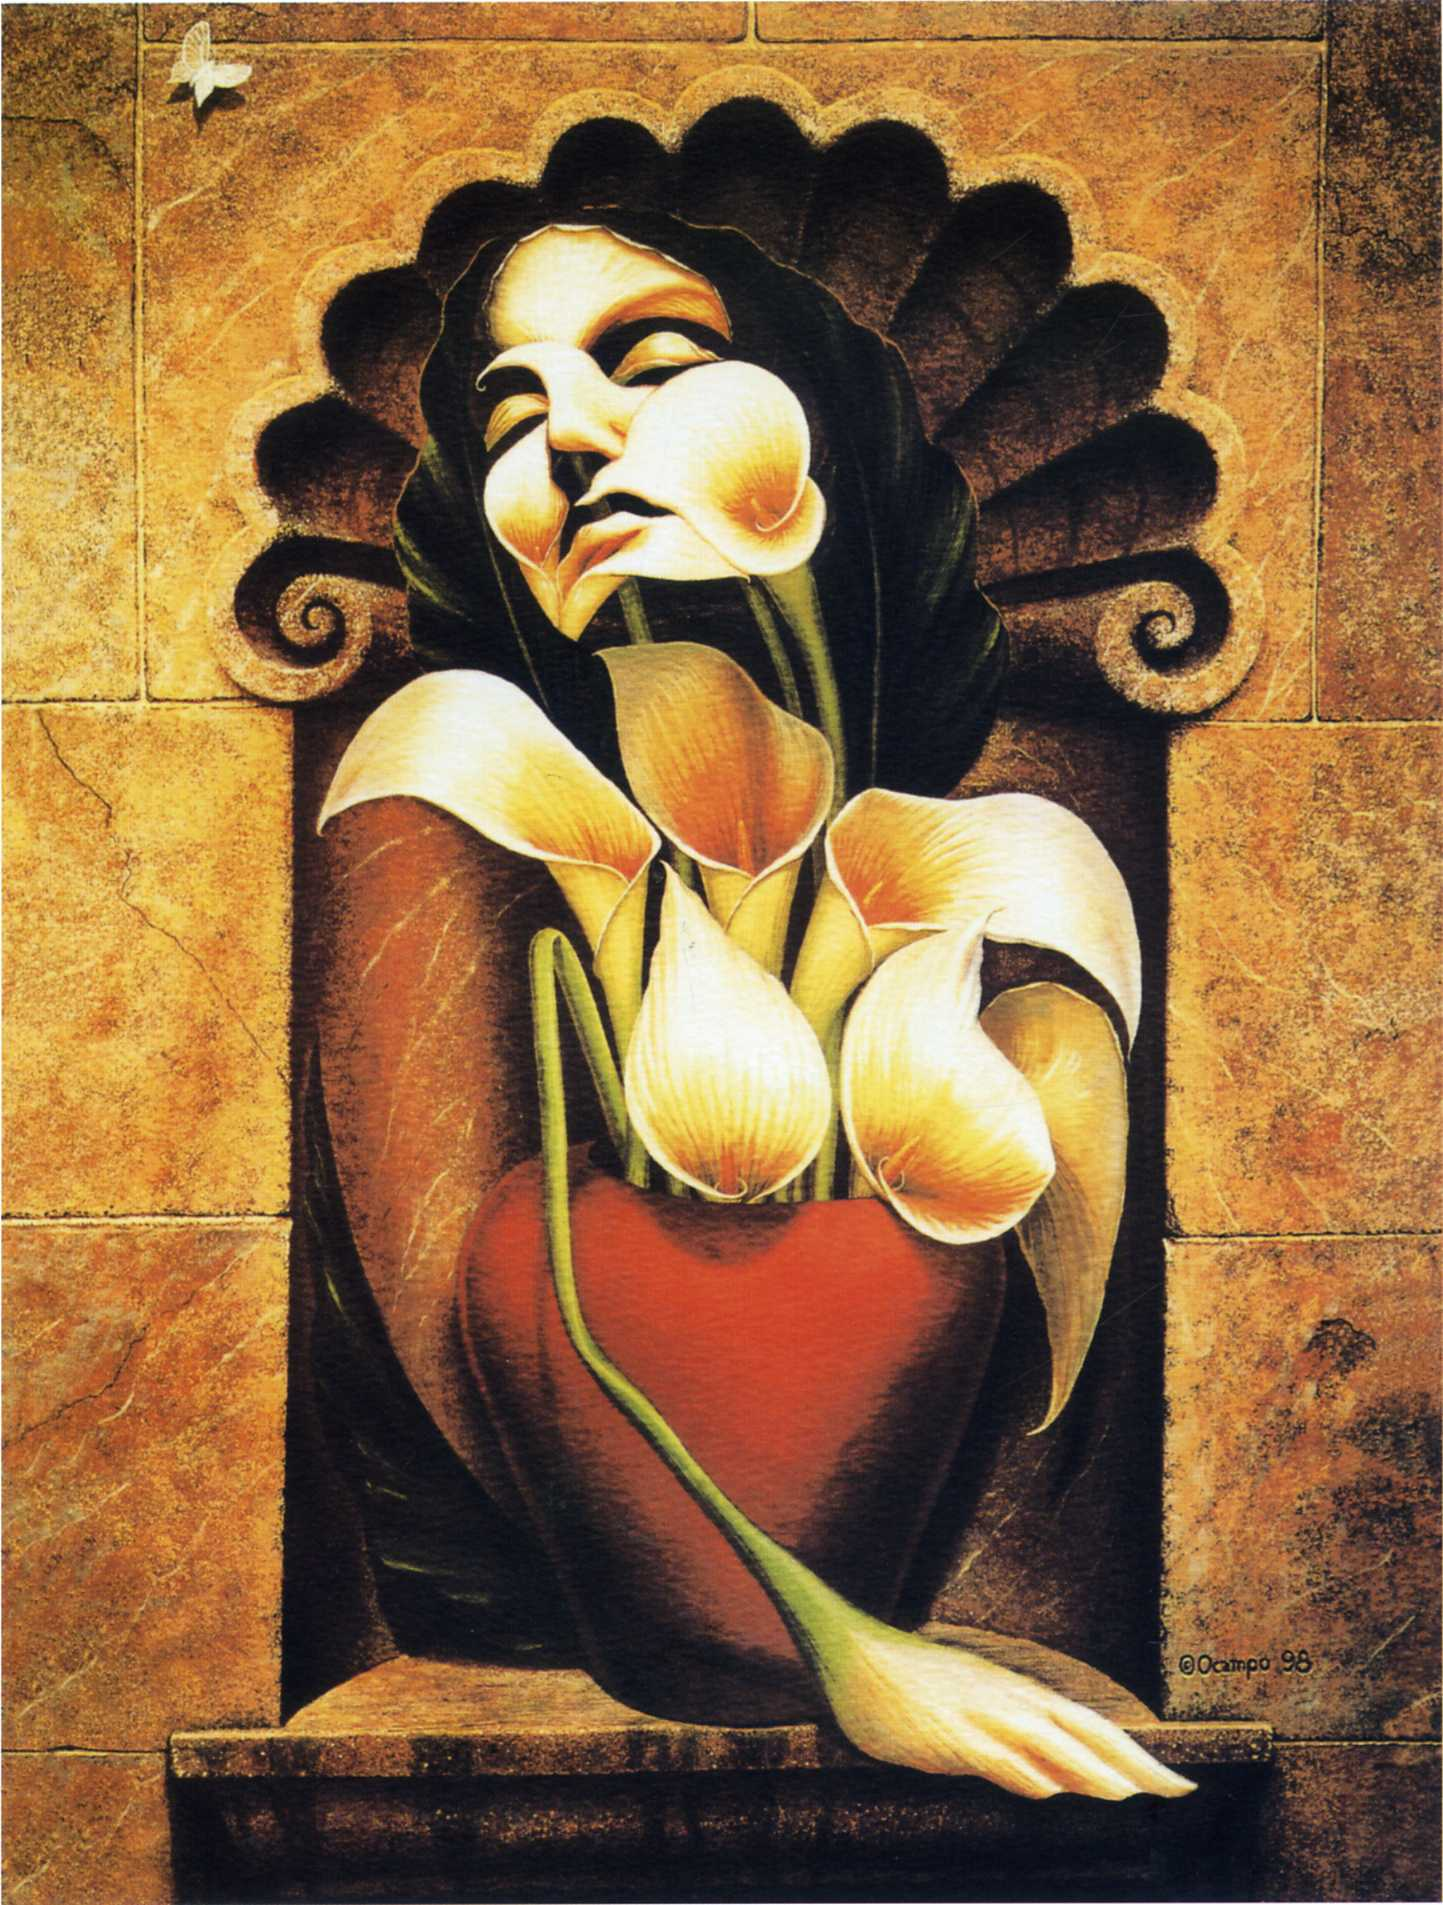 http://uploads1.wikipaintings.org/images/octavio-ocampo/marlena-dietrich.jpg